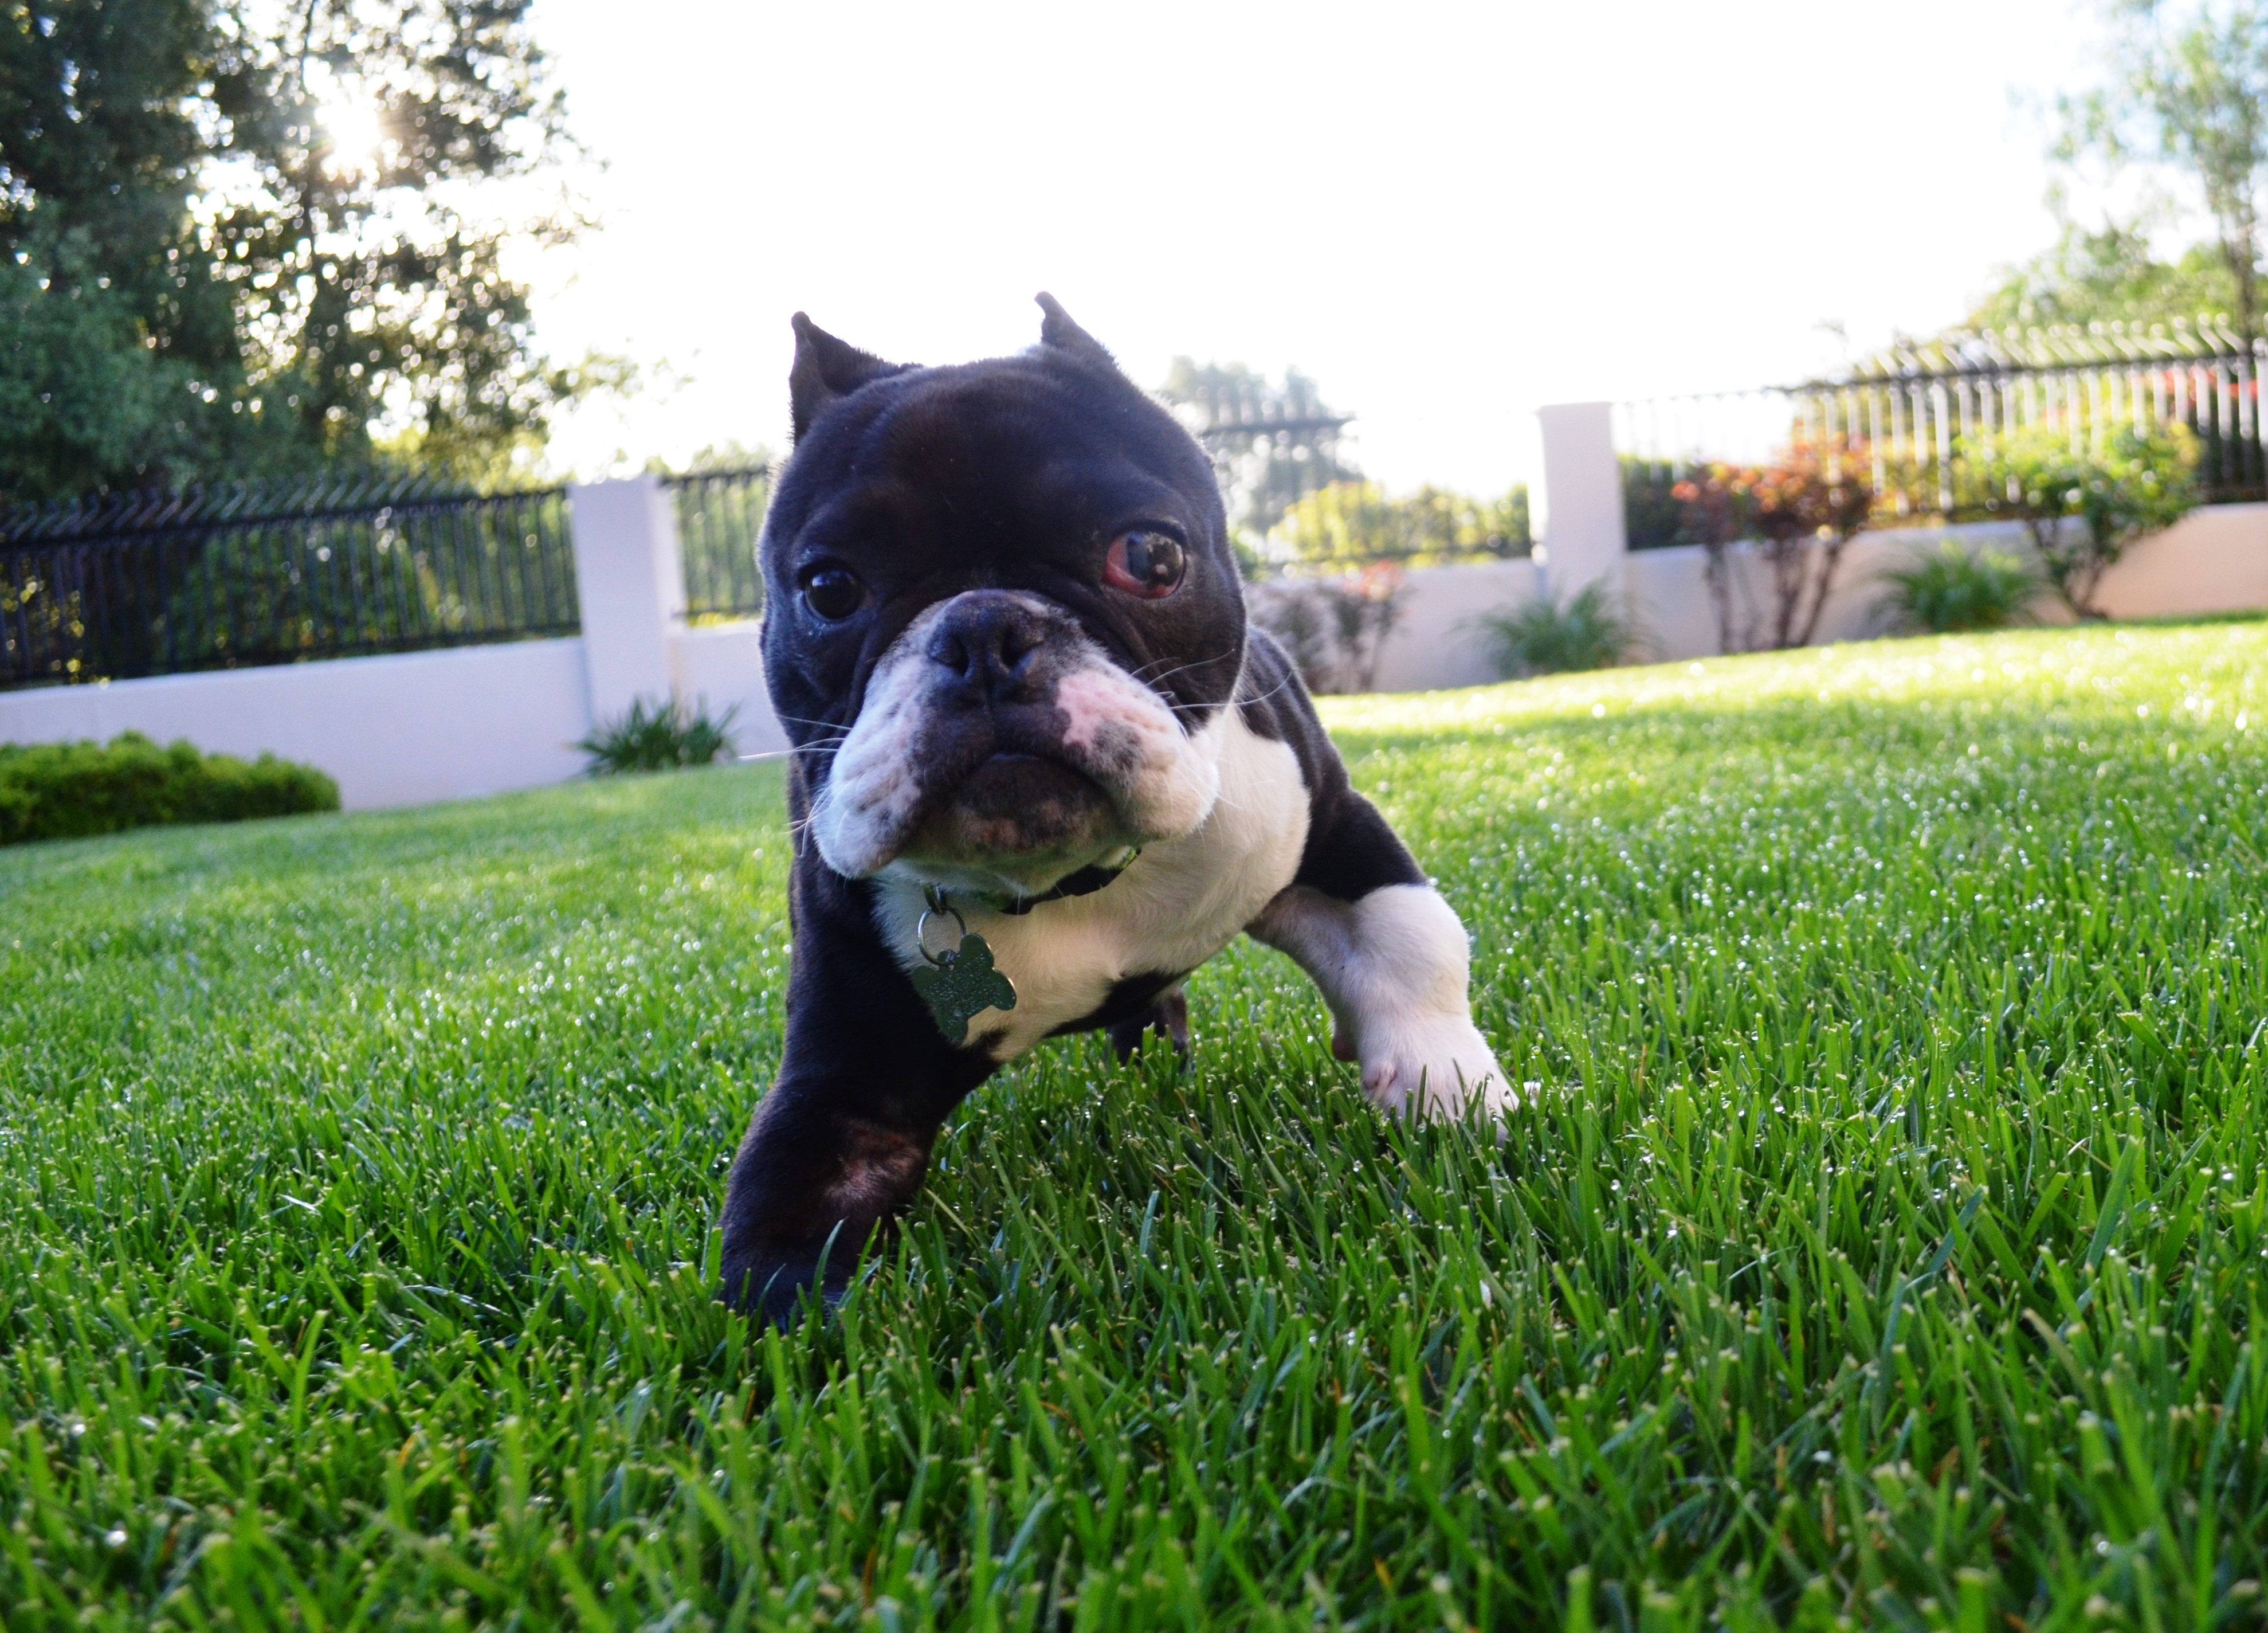 Hercules loves to spend time on the grass